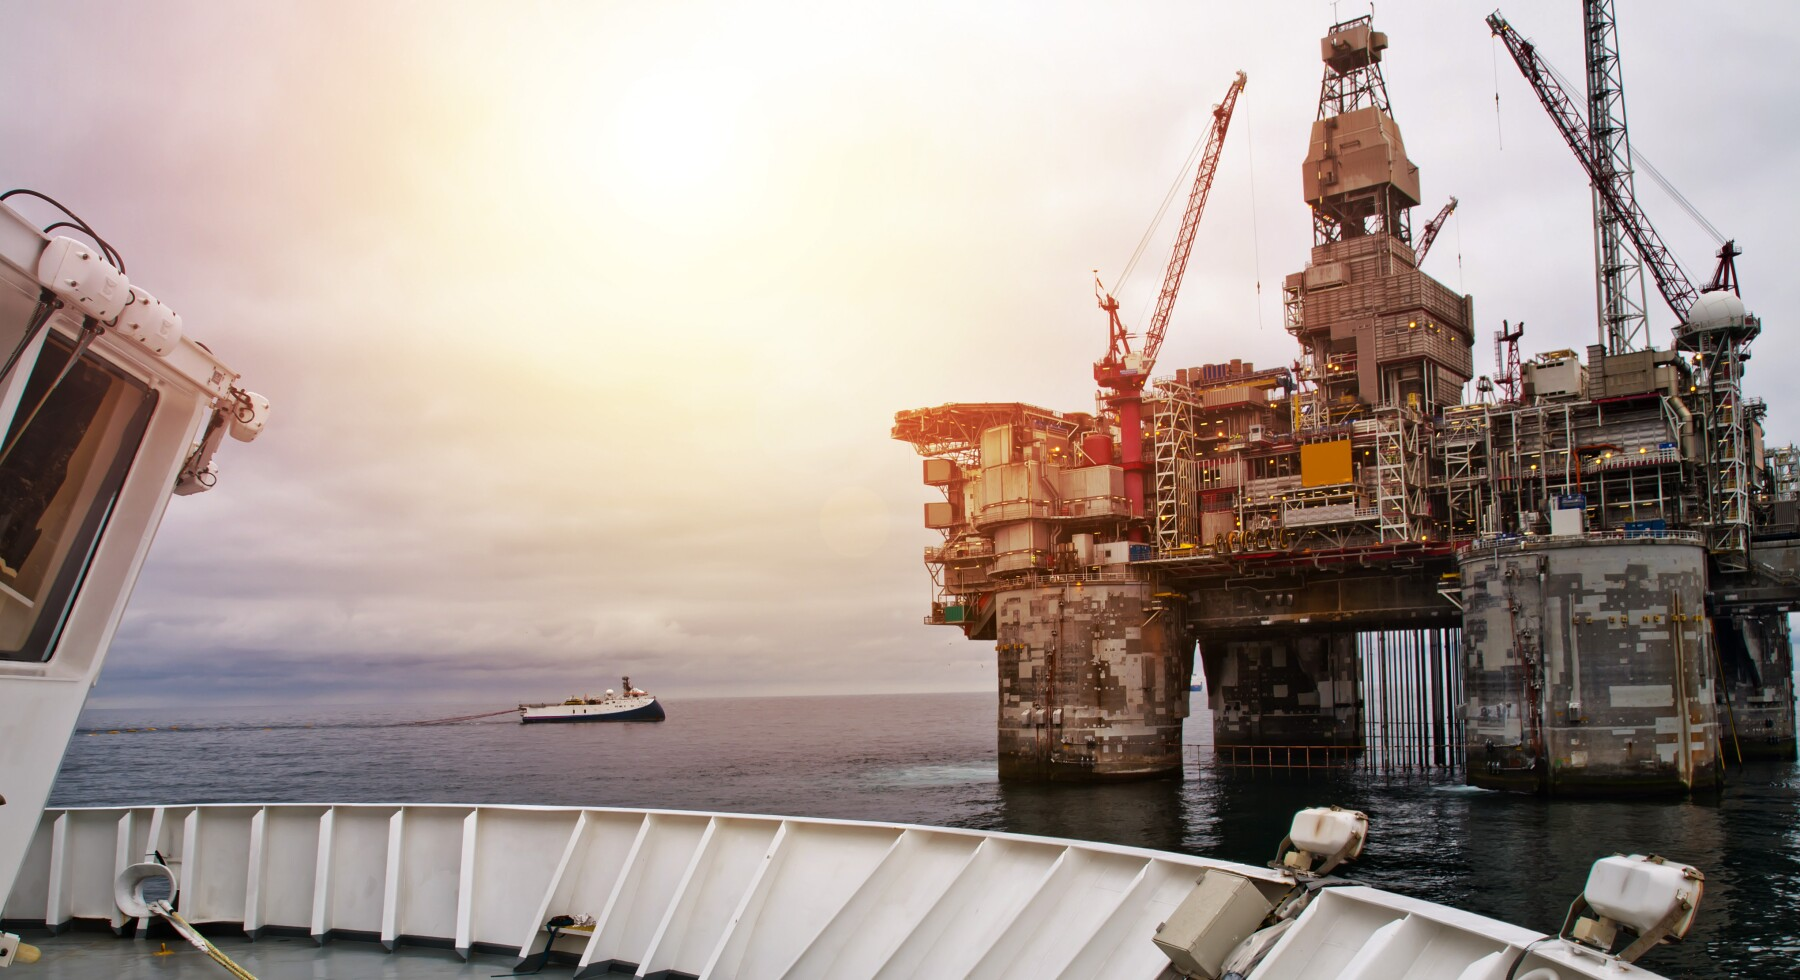 Offshore drill rig at sea at close distance